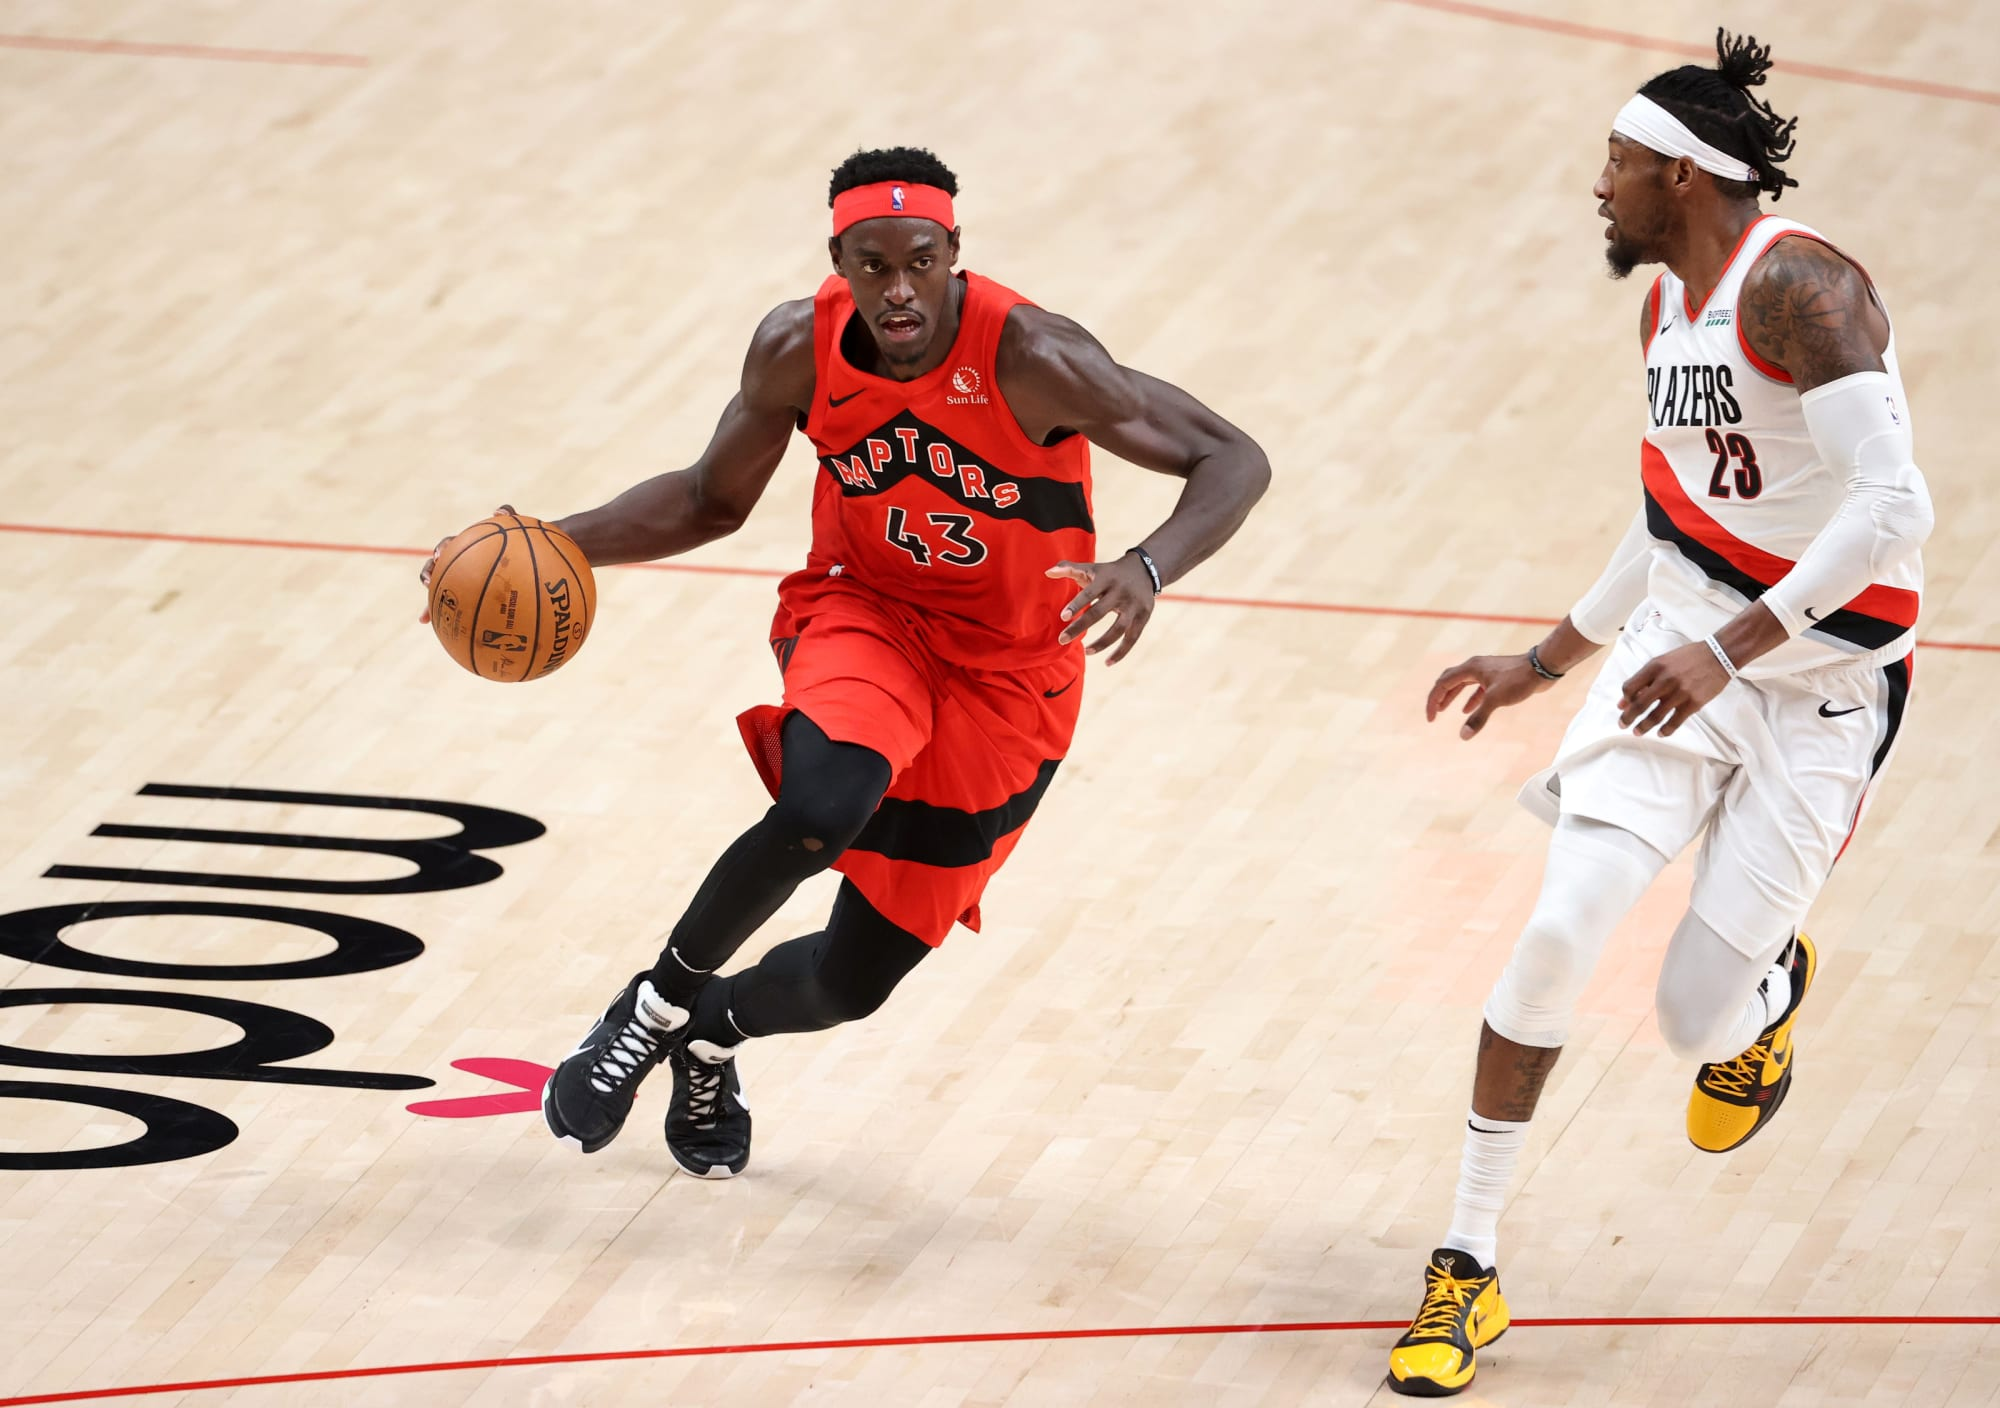 Toronto Raptors: The Pascal Siakam Slander Needs to Stop